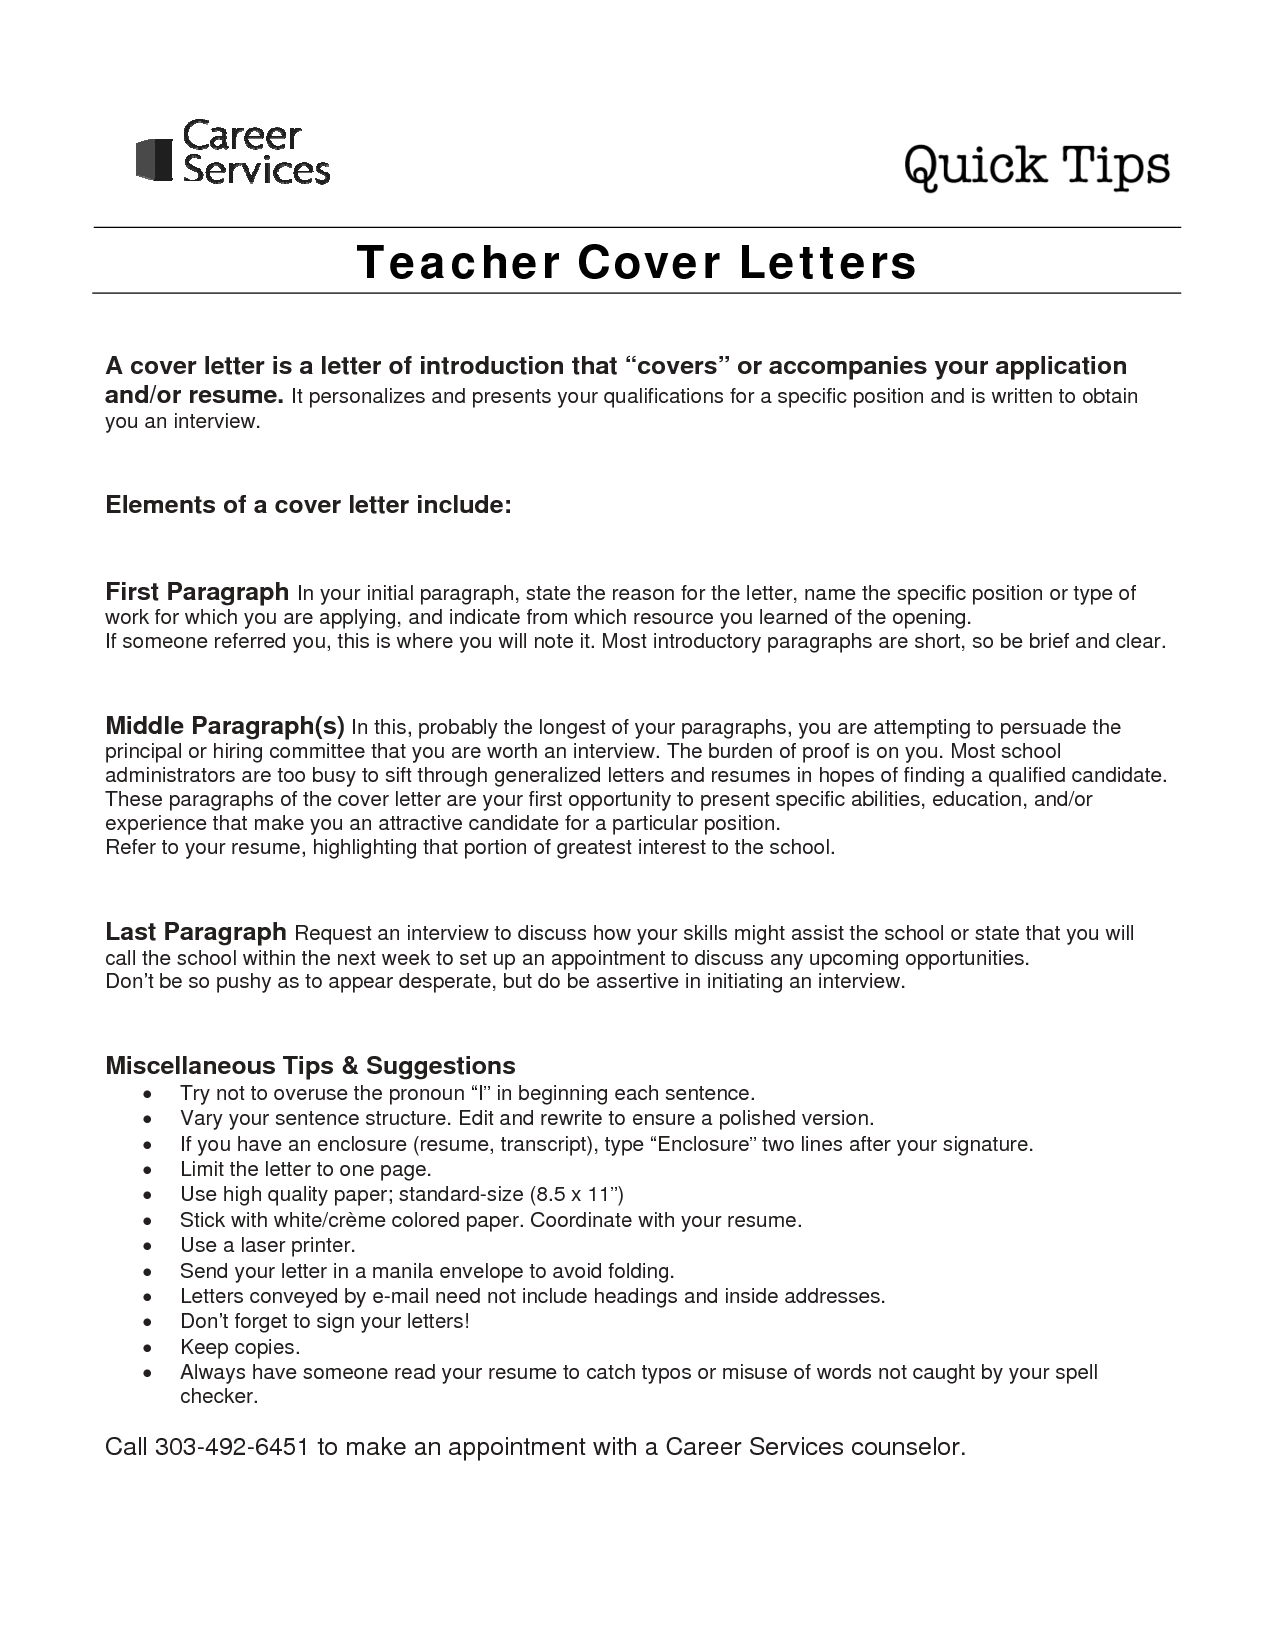 letter samples cover mistakes faq about builder teachers resume template for sample inside teaching best free home design idea inspiration - Modern Cover Letter Examples